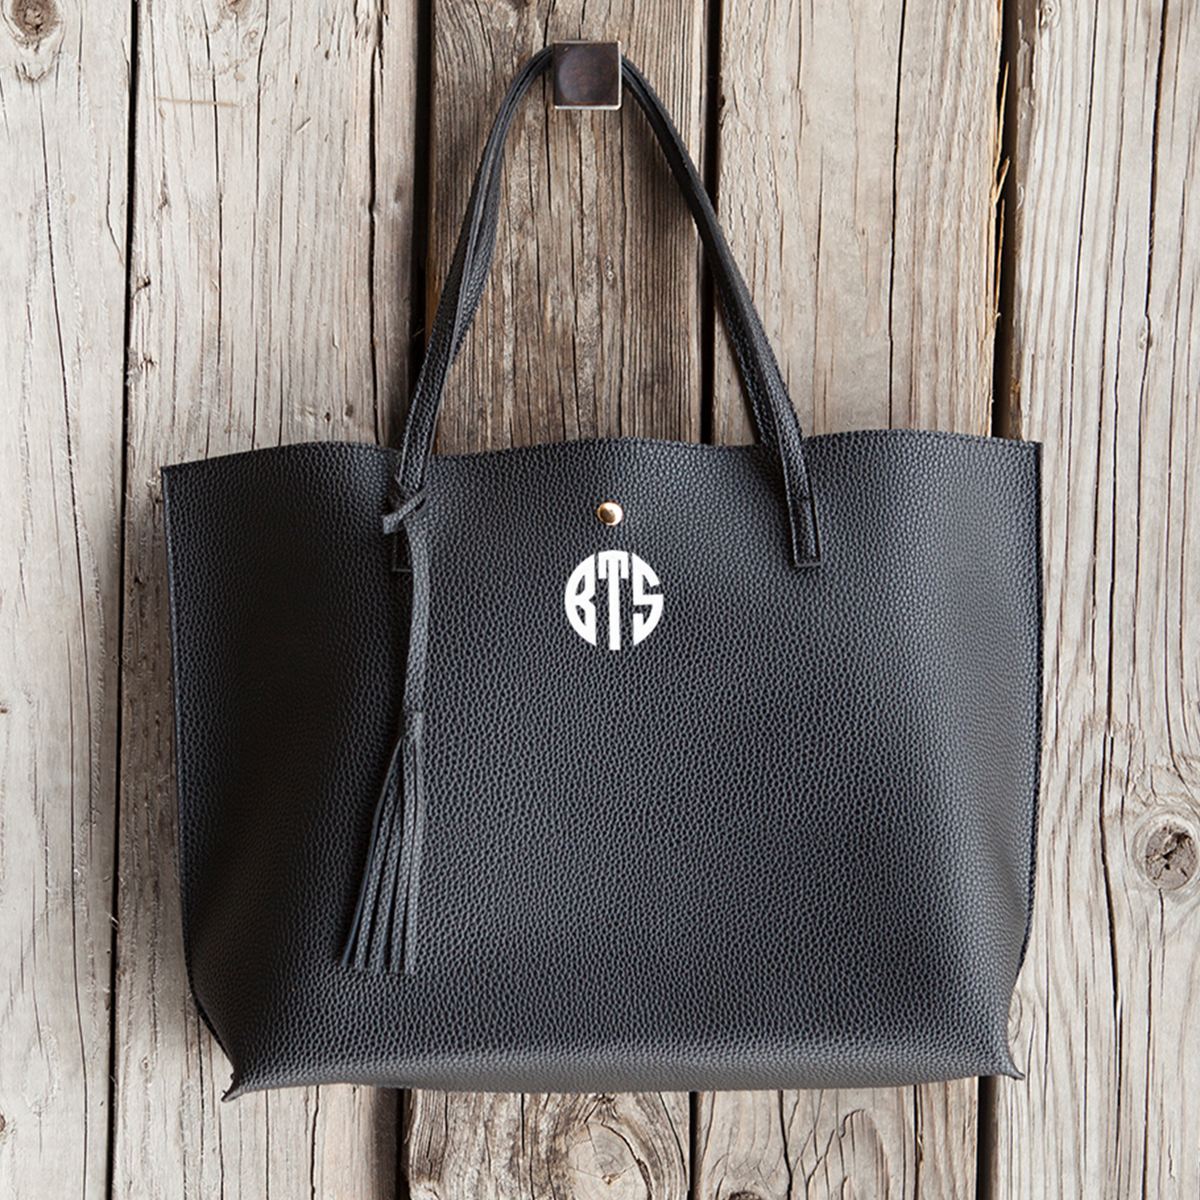 Customizeable / personalizable Monogram Vegan Faux Leather Handbags